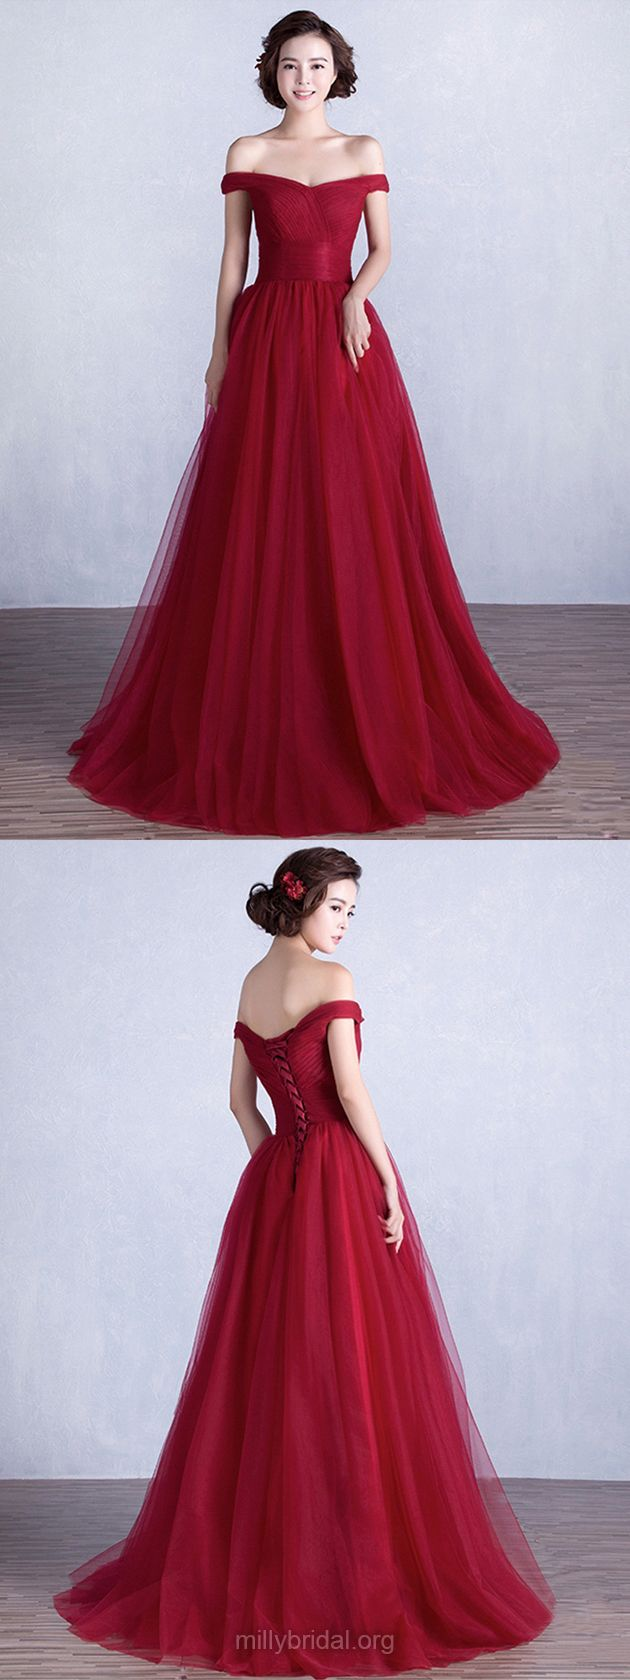 Burgundy Prom Dresses Long, 2018 Prom Dresses Princess, Off-the-shoulder Prom Dresses Tulle Ruffles Lace-up, Modest Prom Dresses Ball Gown